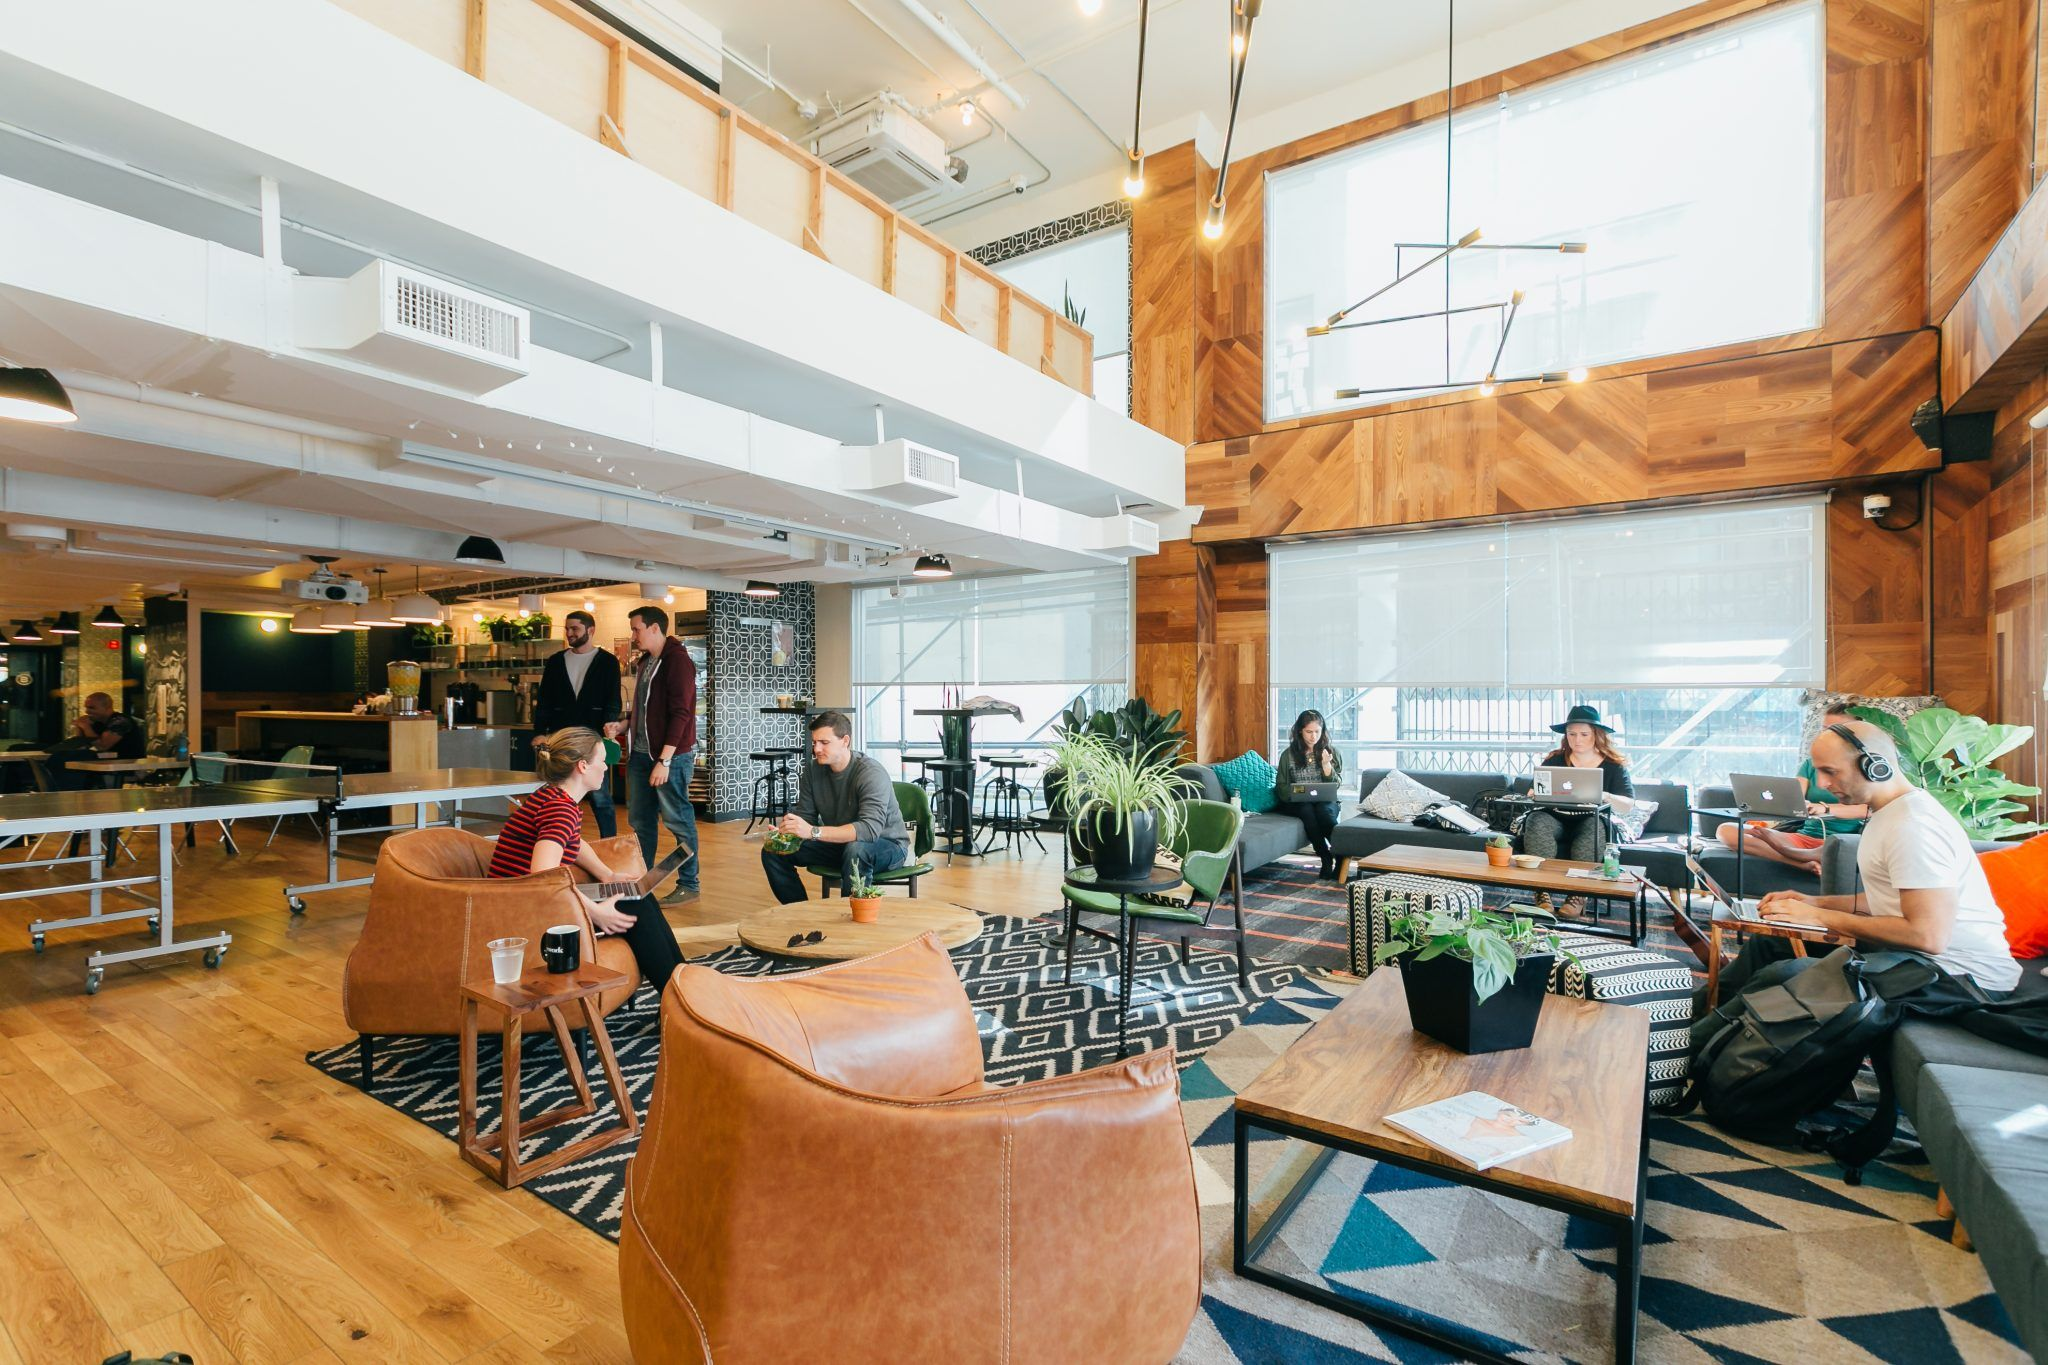 Get Office Space Direct Offices In San Francisco At Affordable Cost For More Information Visit Us At Http Common Area Coworking Civic Center